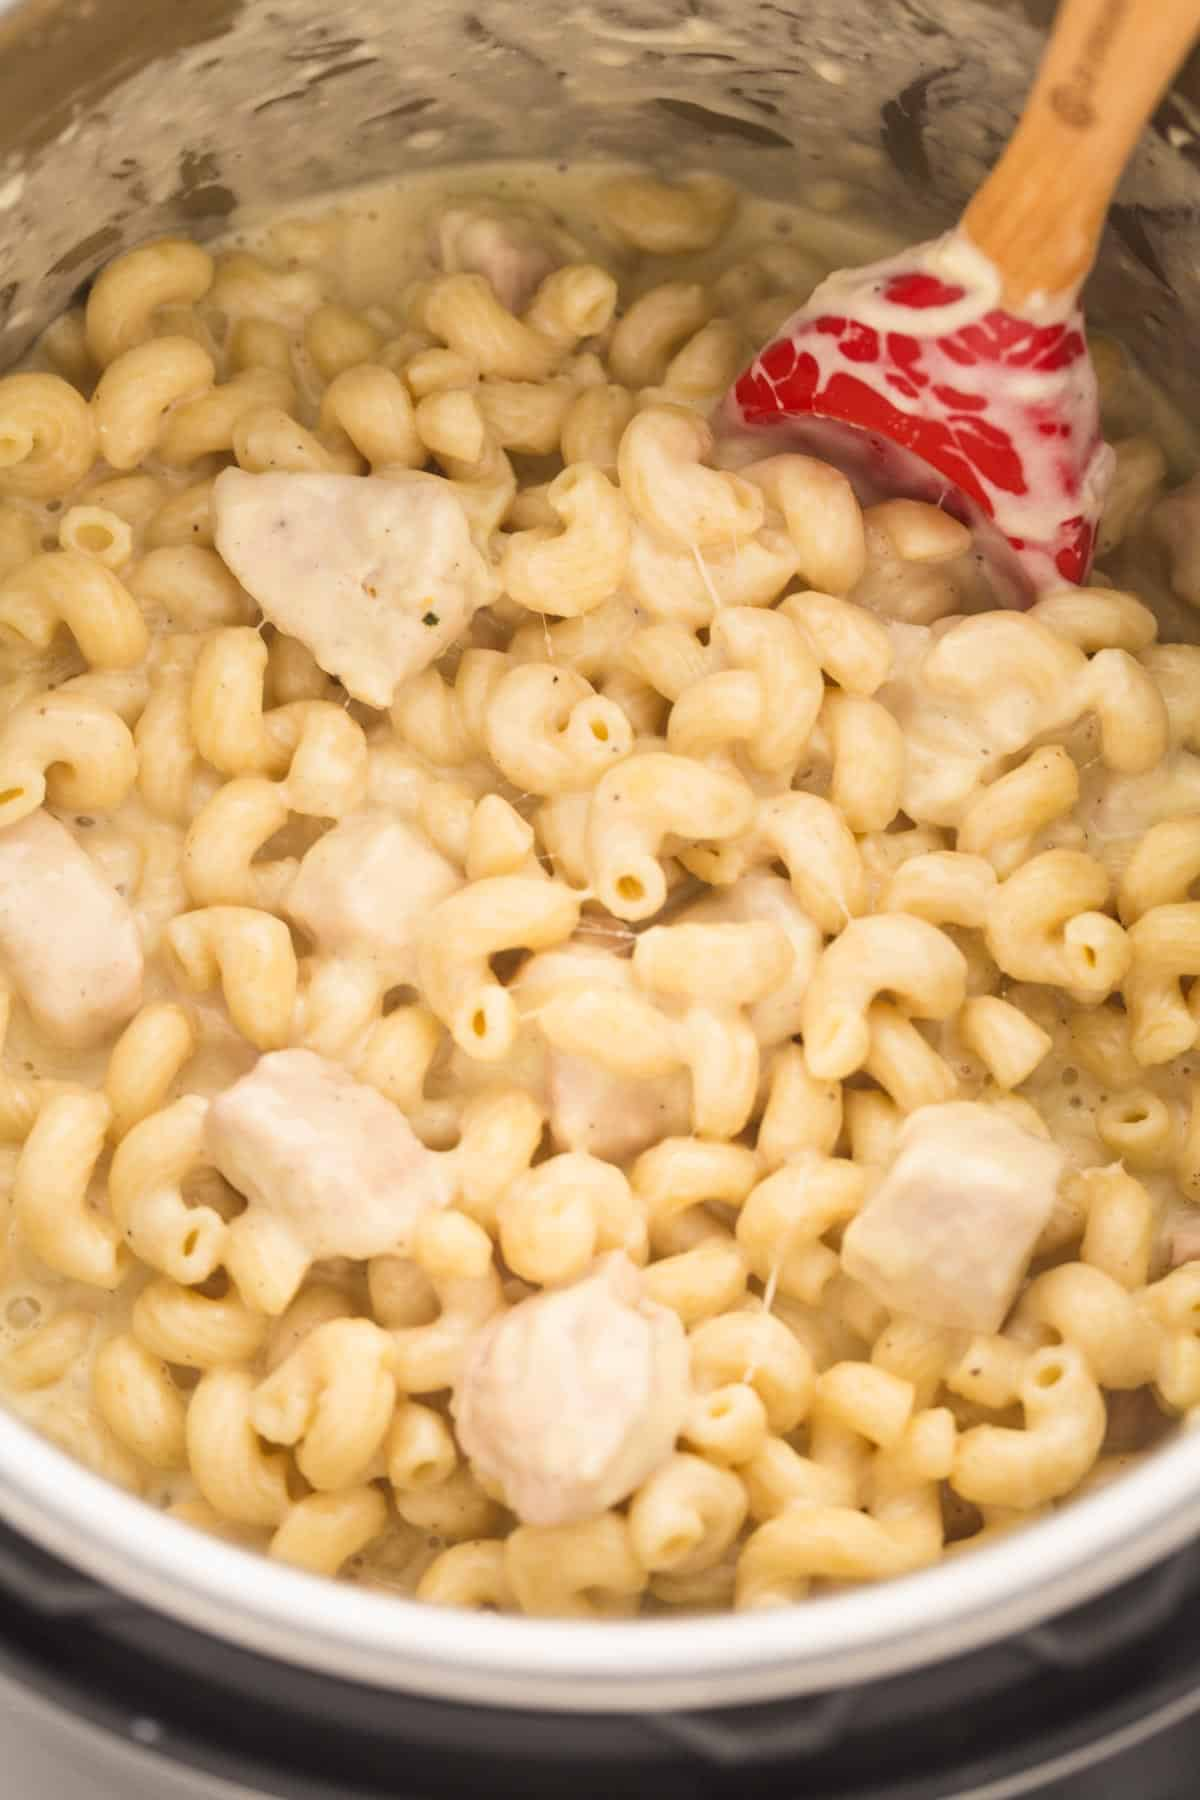 A close up shot of Instant Pot mac and cheese in the Instant Pot with a red spatula